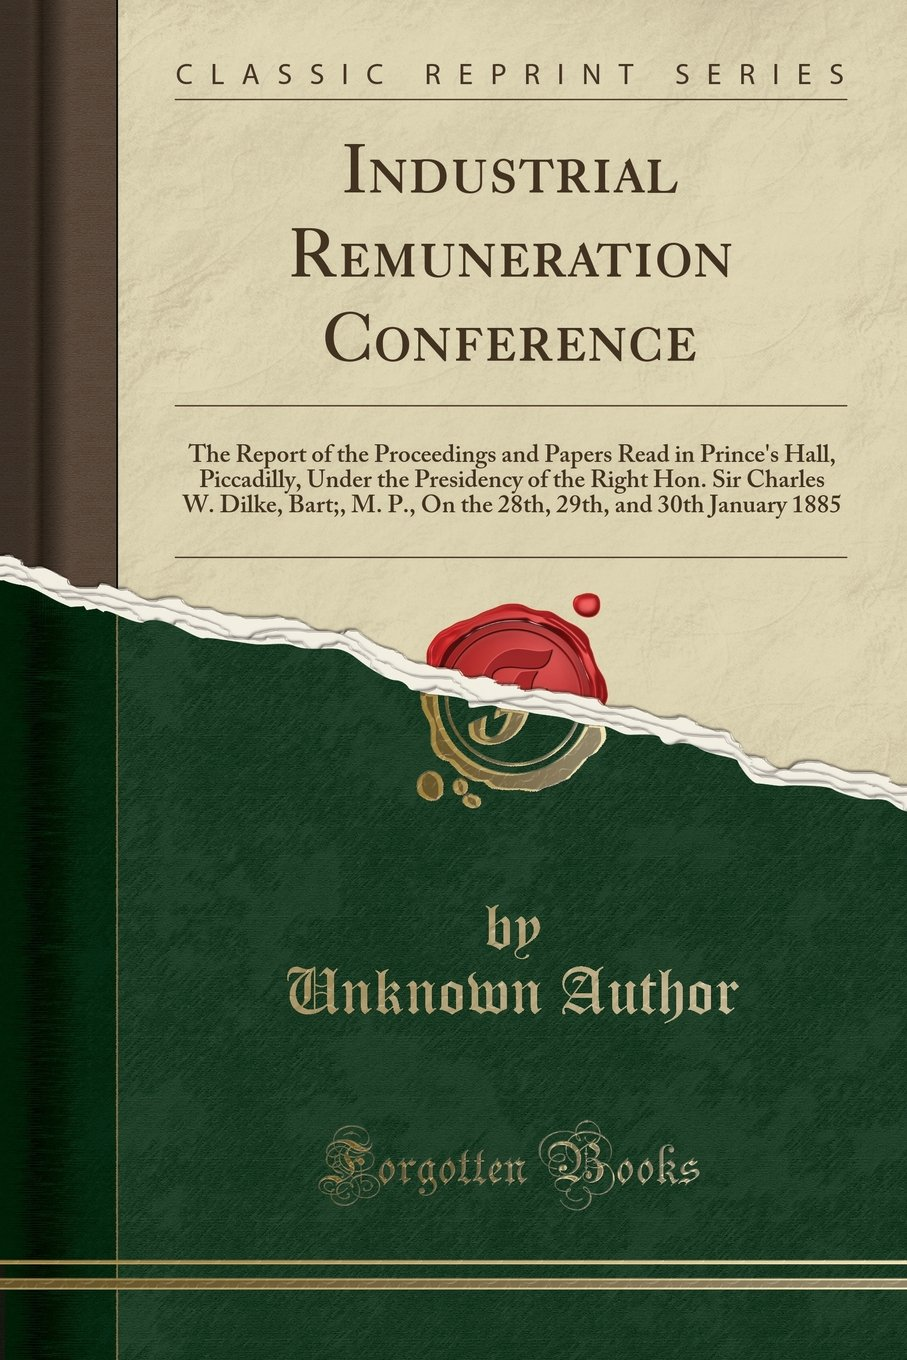 Industrial Remuneration Conference: The Report of the Proceedings and Papers Read in Prince's Hall, Piccadilly, Under the Presidency of the Right Hon. ... 29th, and 30th January 1885 (Classic Reprint) pdf